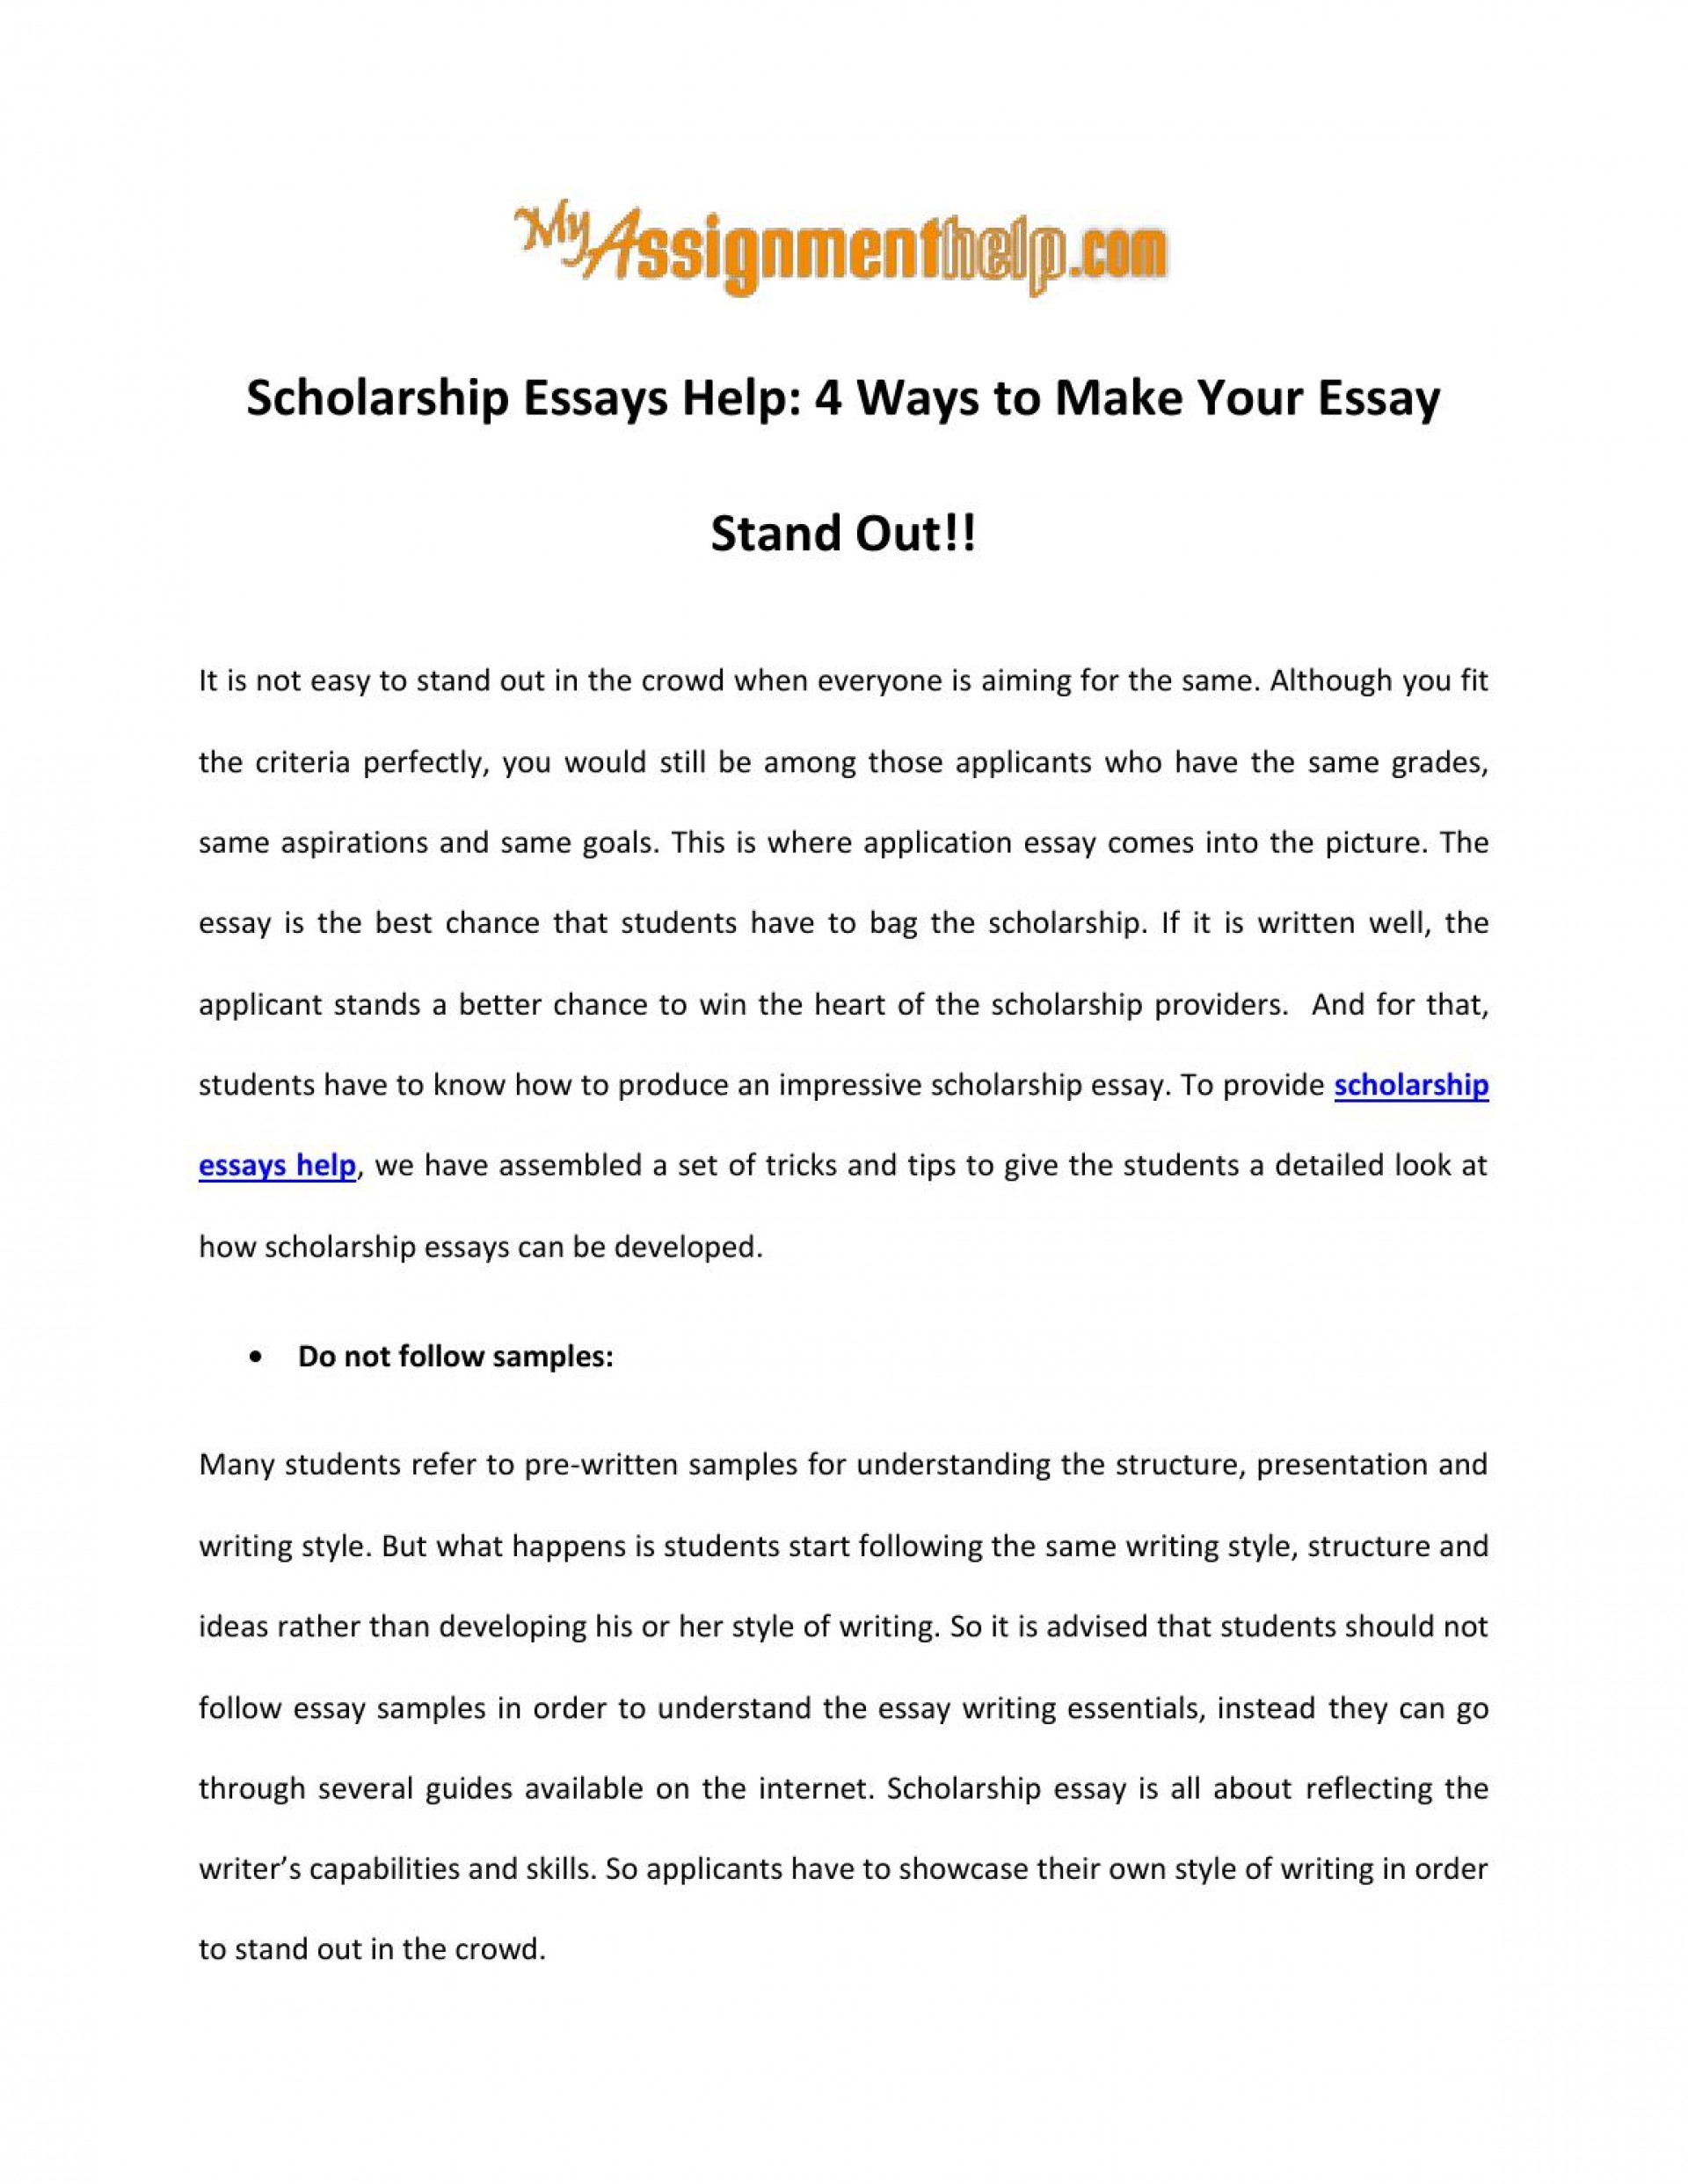 008 Scholarship Essays Help Ways To Make Your Essay Stand Out By Tips For Writing Winning P Effective Singular Gilman Psc Goldwater 1920